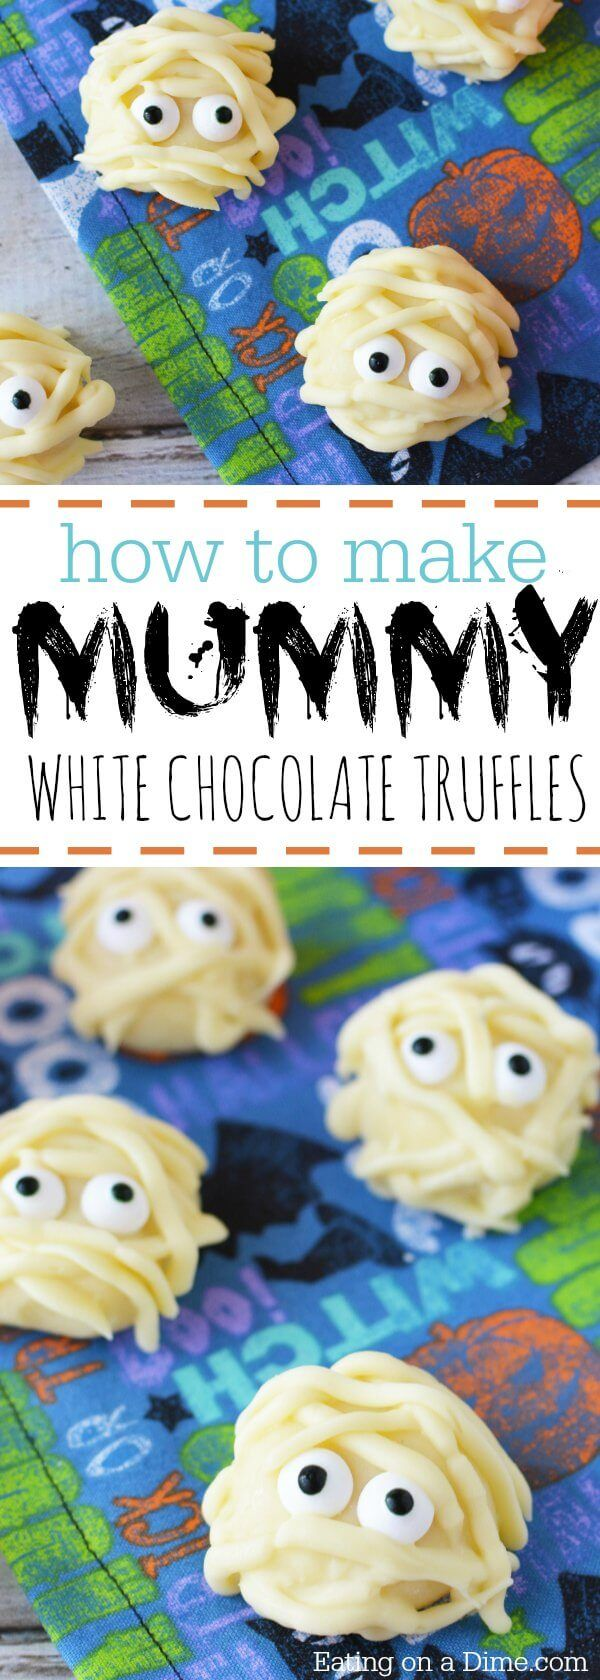 Try this Mummy White Chocolate Truffles Recipe.You will be the hit of the Halloween party with these Mummy White Chocolate Truffles.They are so quick & easy